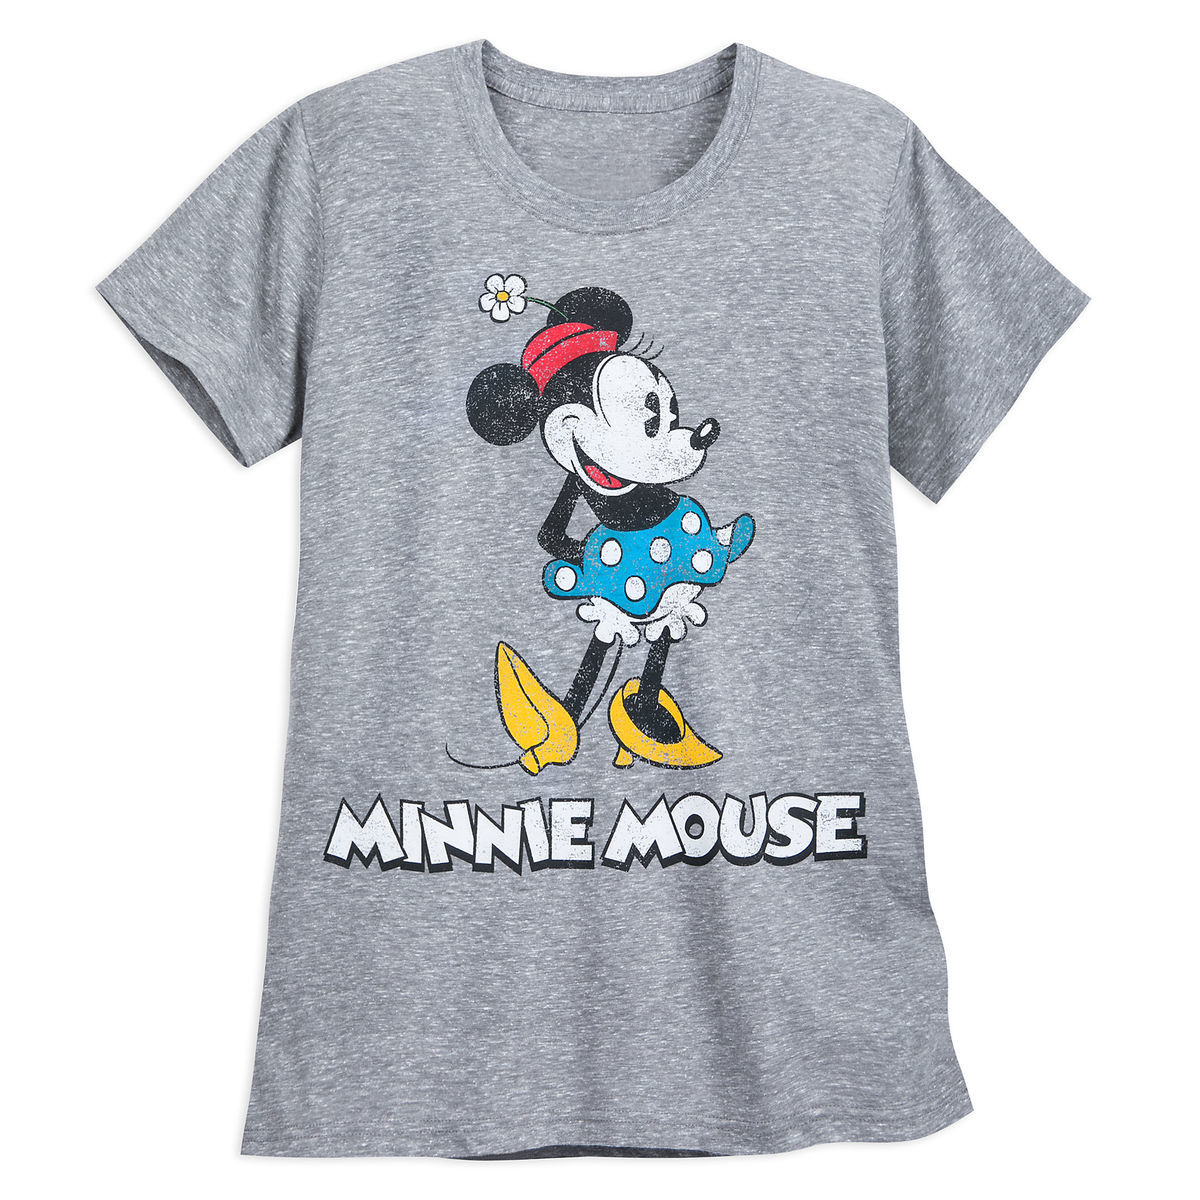 9b35a063511 Product Image of Minnie Mouse Classic T-Shirt for Women - Gray   1